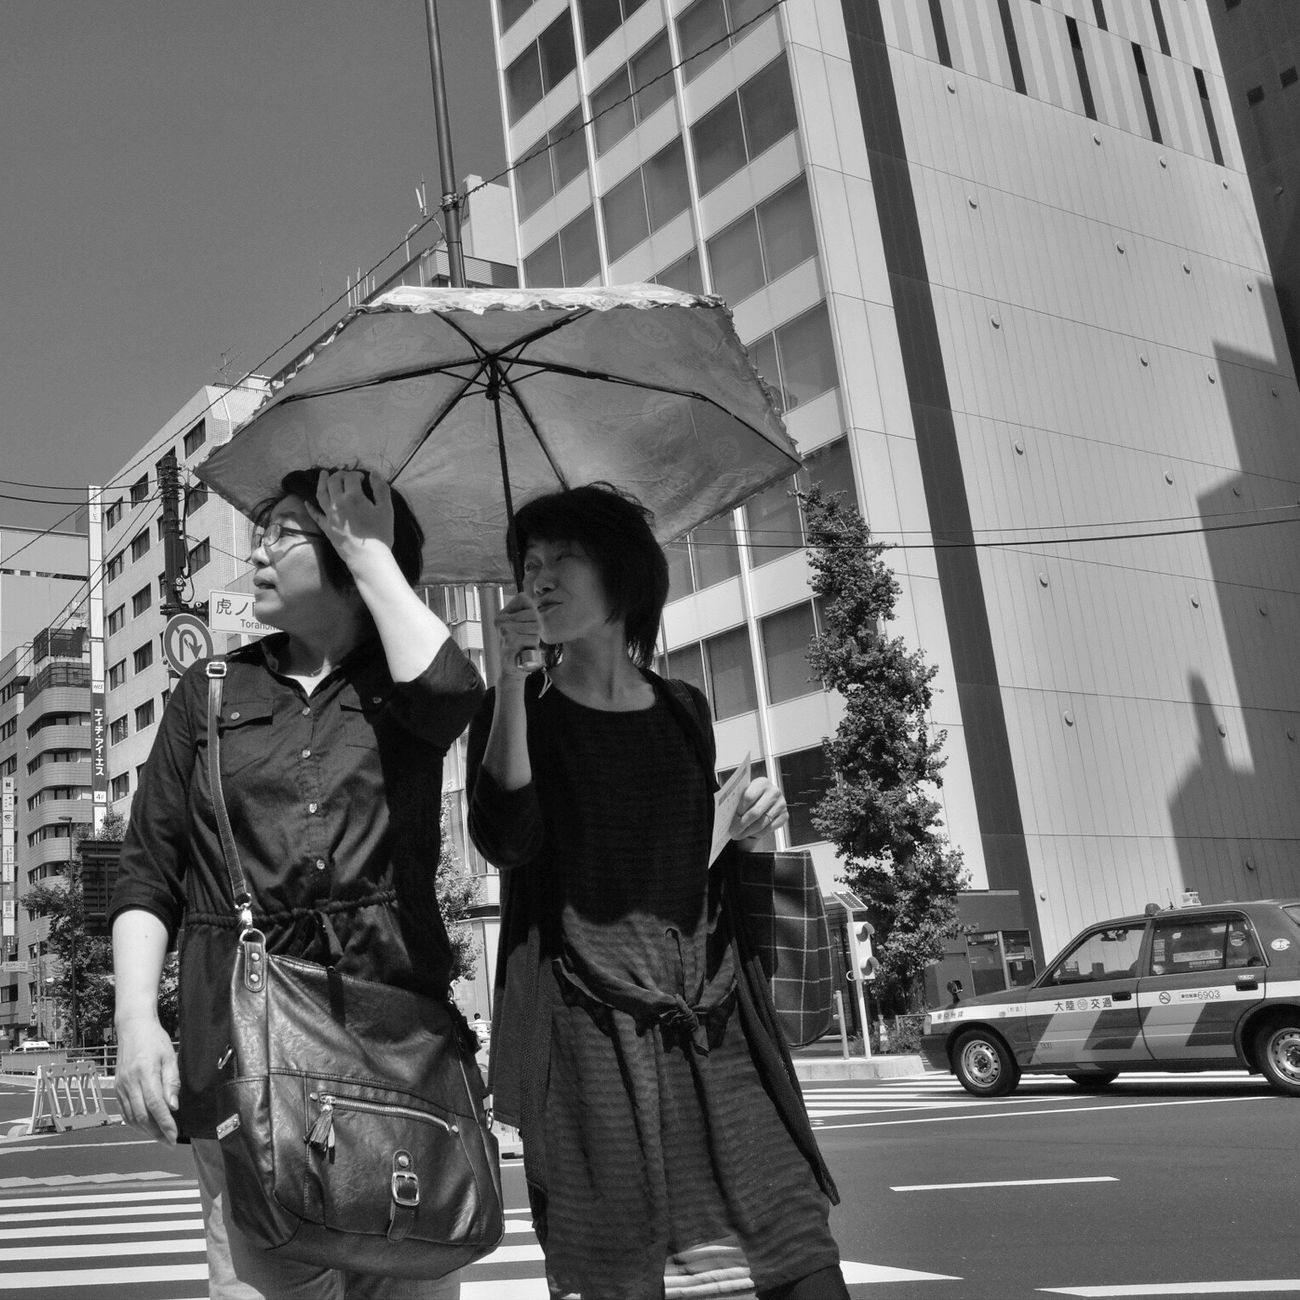 City City Life Hot Day Sunshine Streetphotography_bw B&w Street Photography Blackandwhite Crossing Streetphotography City Street Snapshot CityWalk On The Road Summer Urban at Toranomon 虎ノ門 , Tokyo Japan